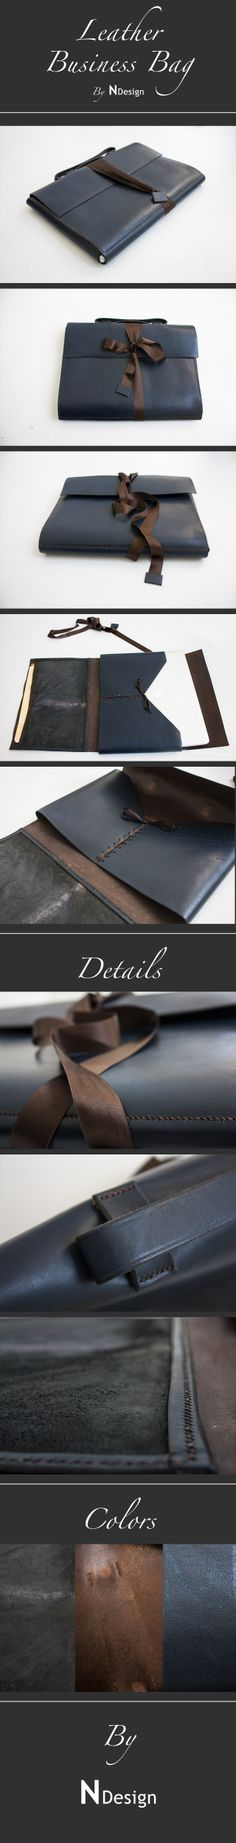 Leather Business Bag - by N Design The Originals, Business, Cover, Leather, Bags, Design, Organizers, Handbags, Totes